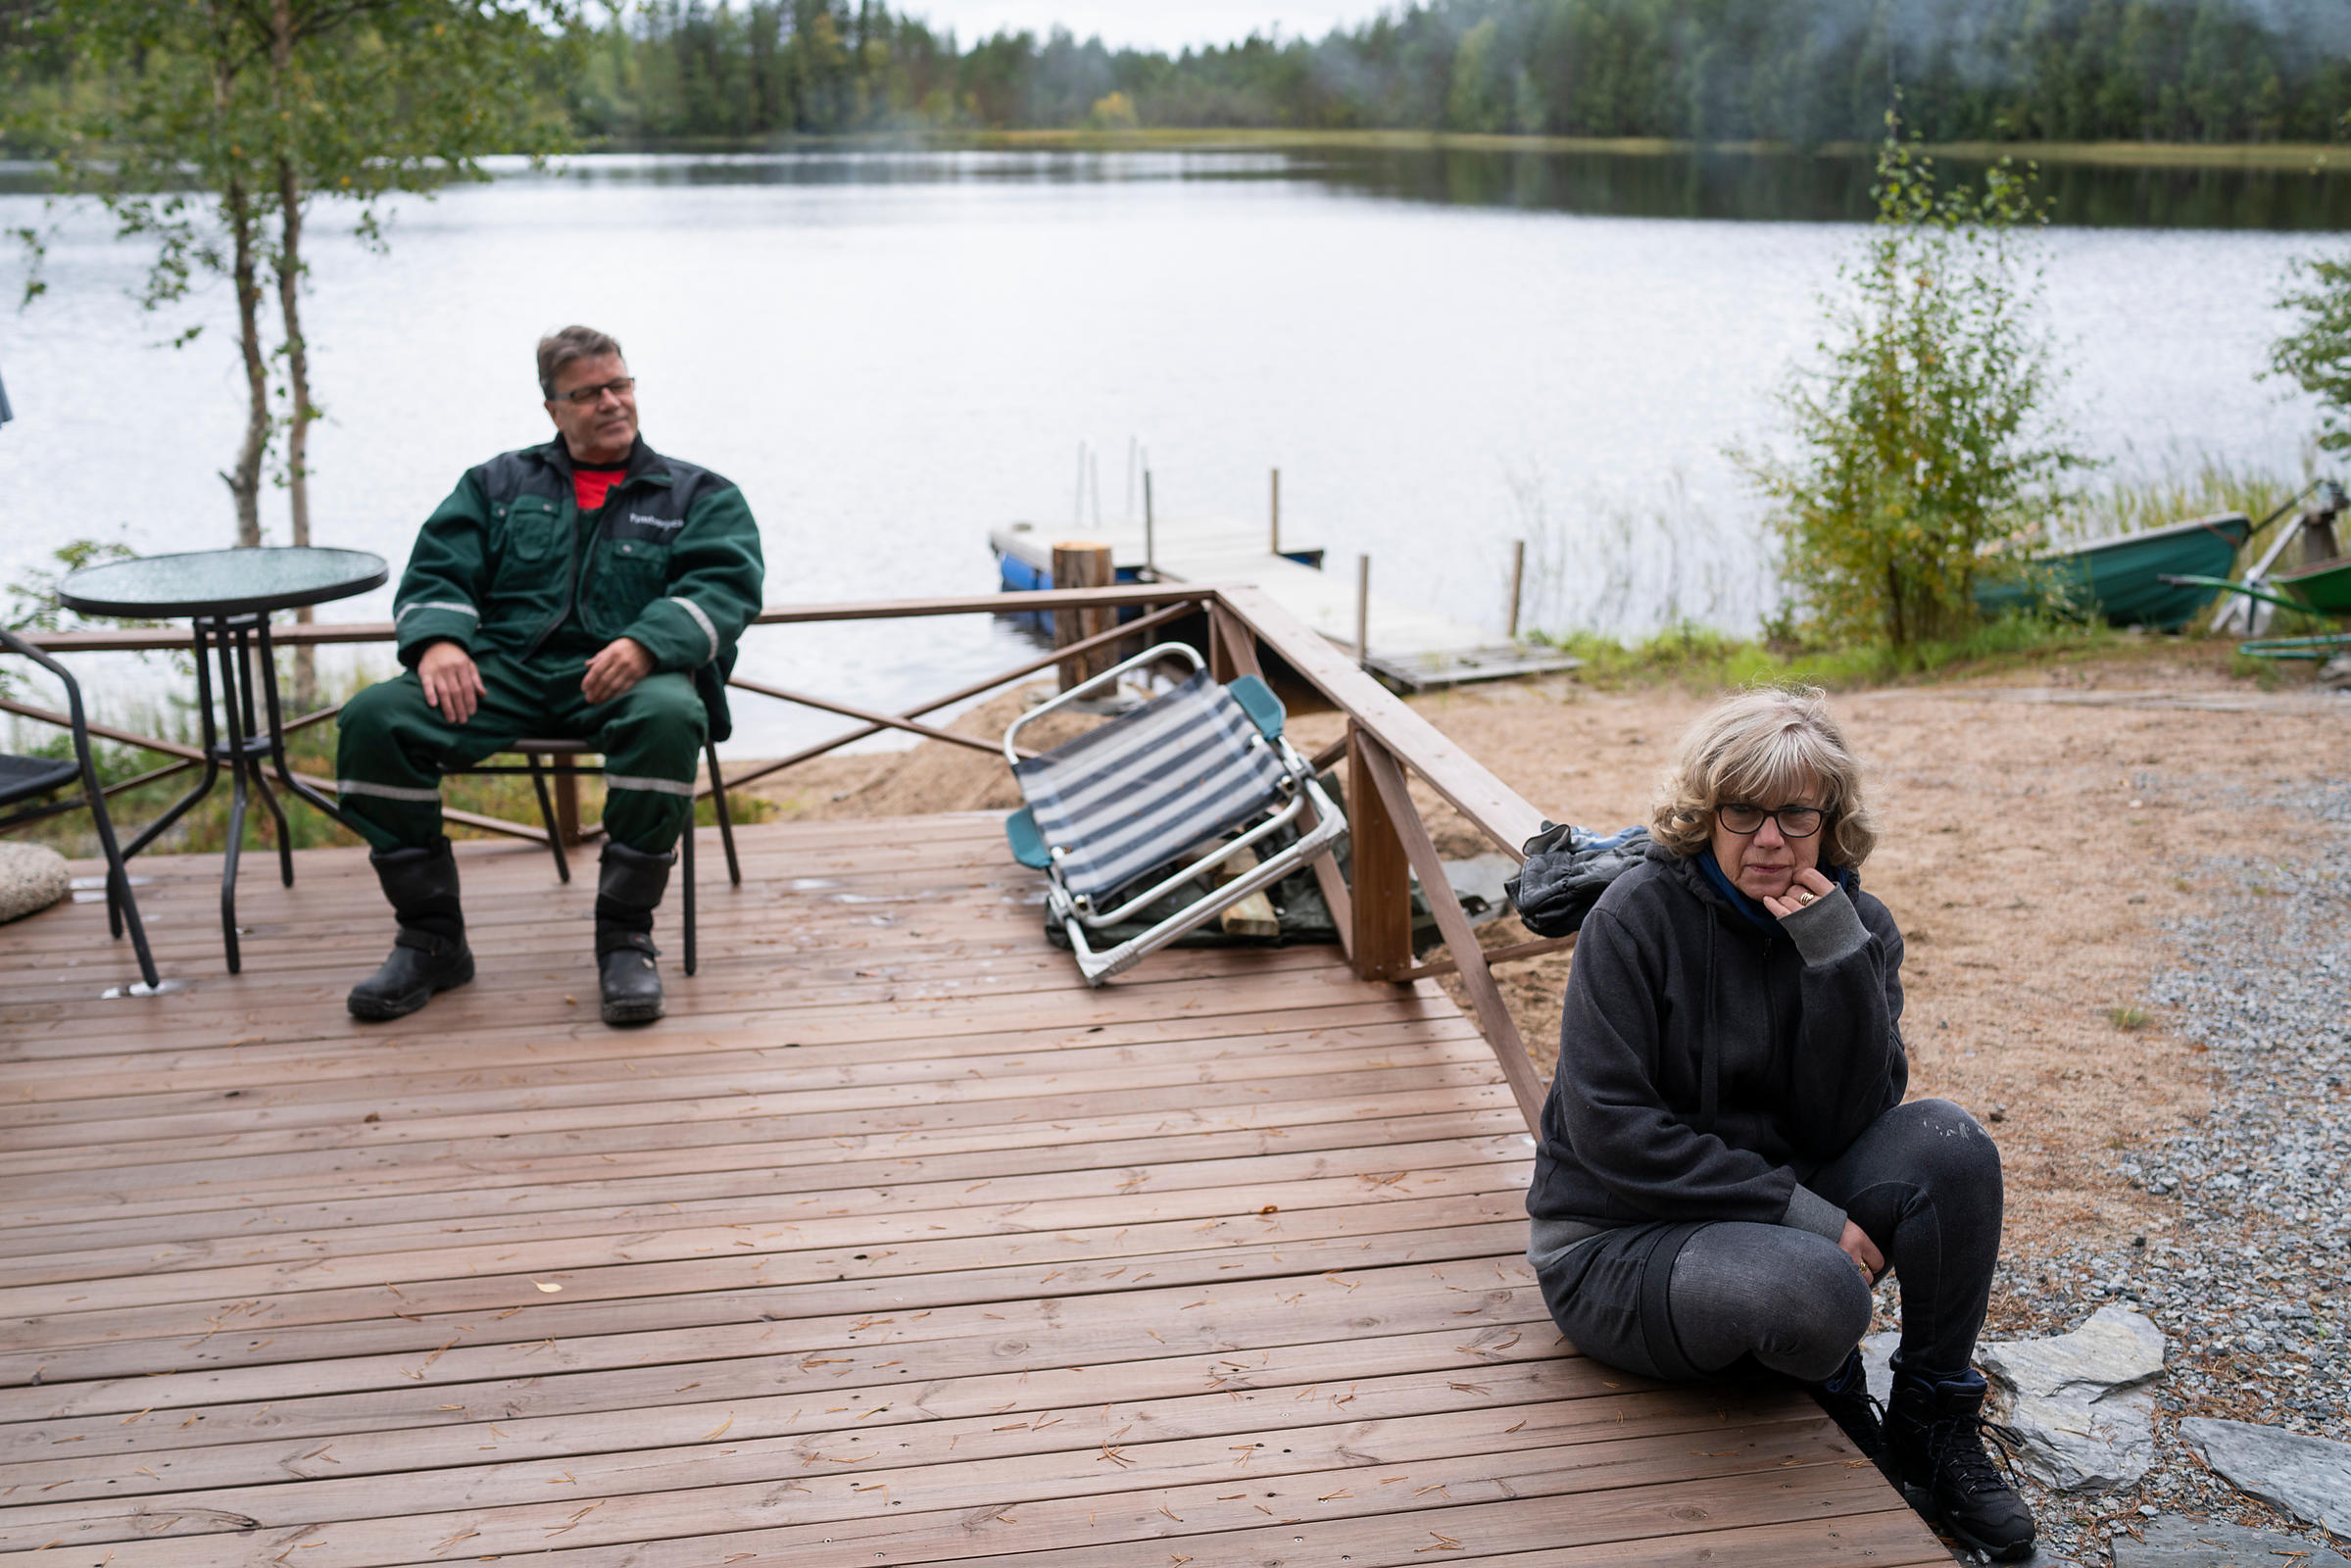 Kari and Sirkka Nahkiaisoja from Orivesi at their cottage on the shore of lake Haukinen.